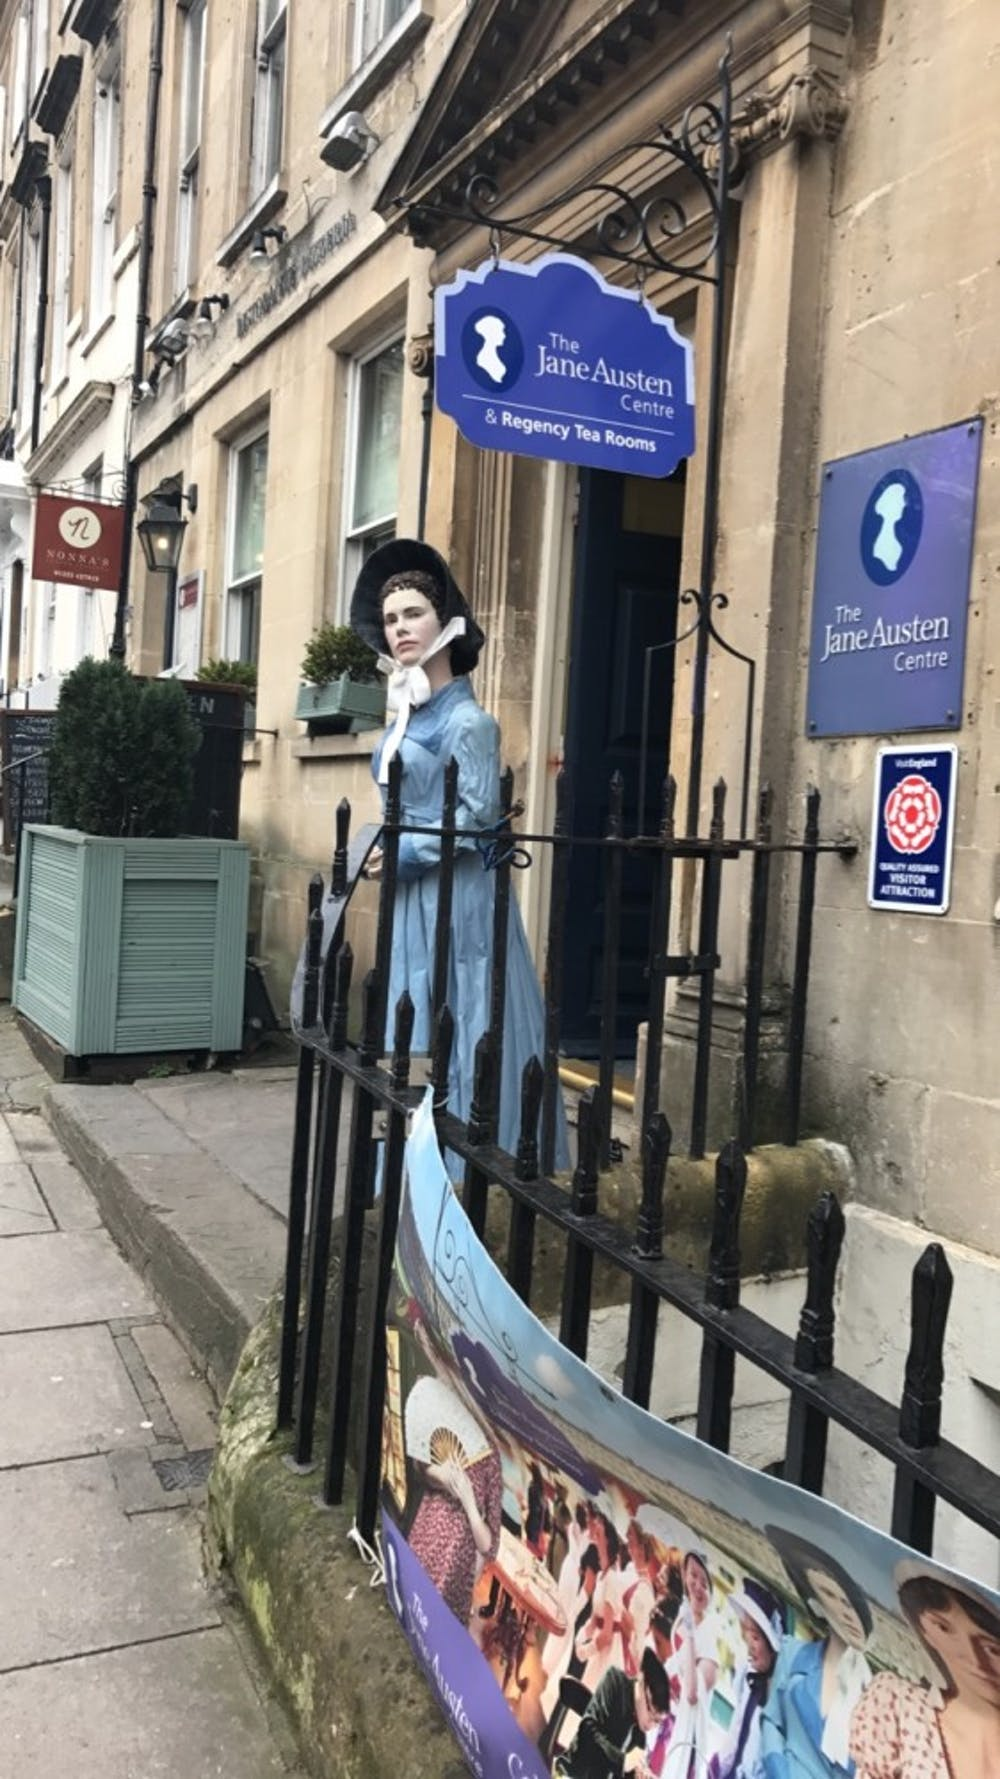 Life in London: the best day of my life at the Jane Austen Centre